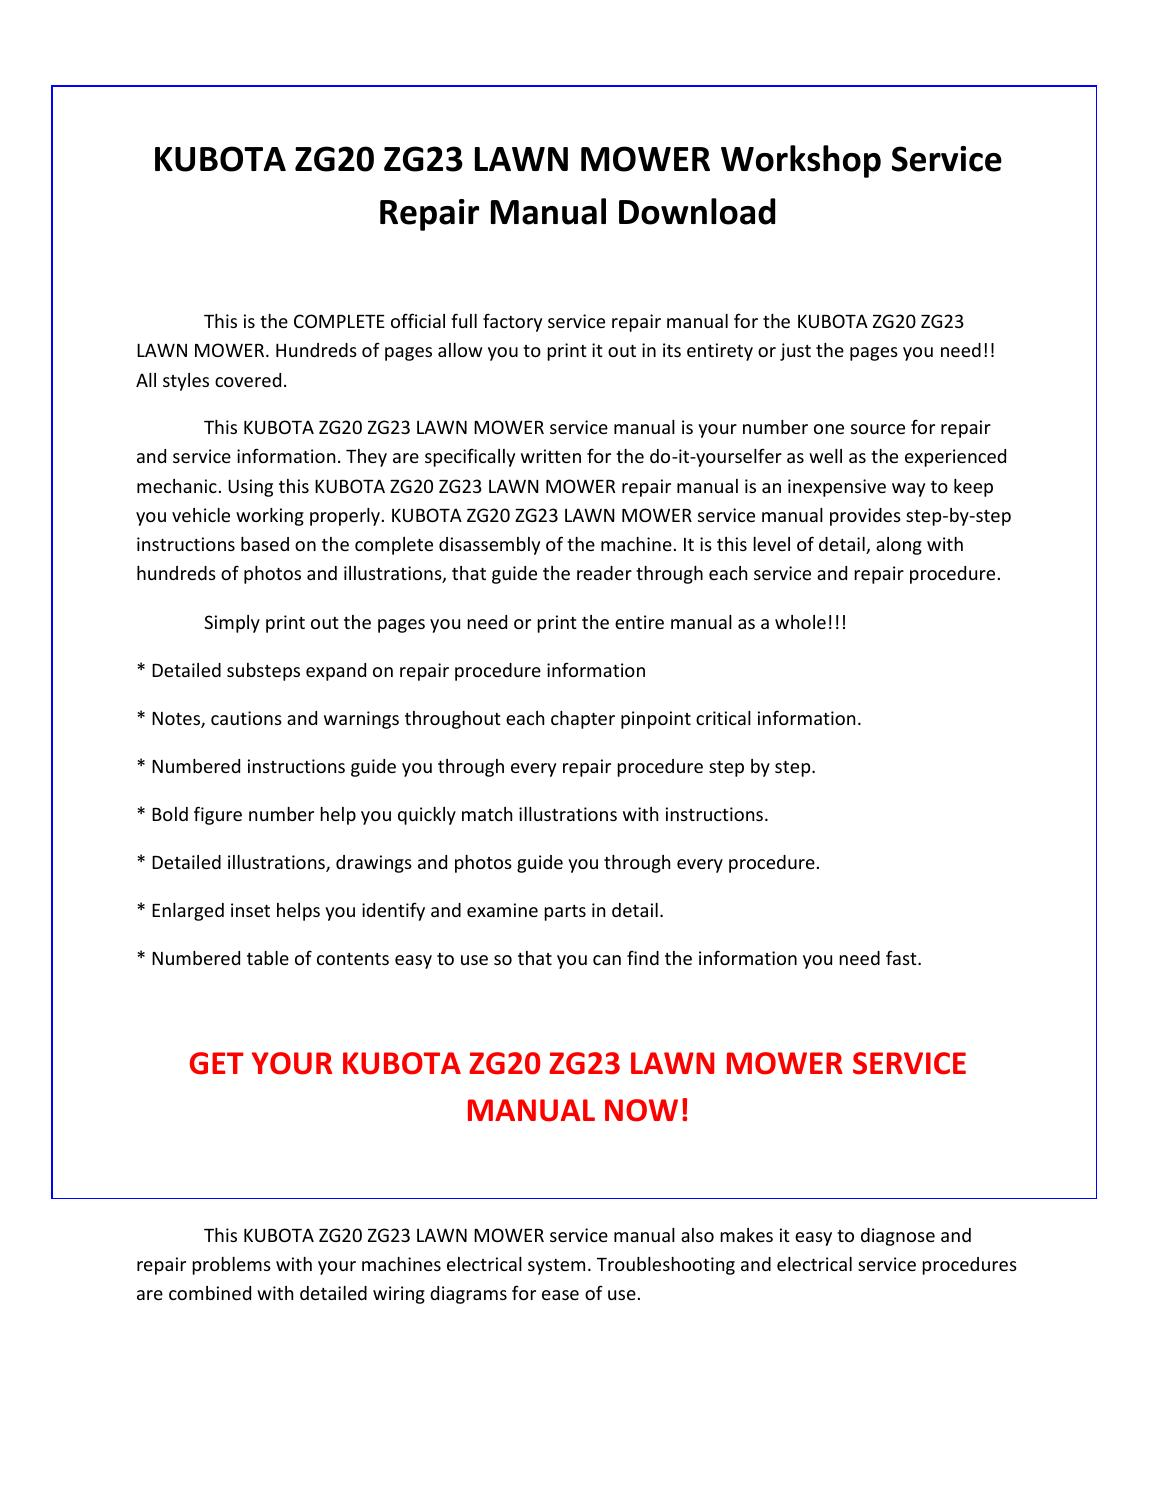 Kubota Zg23 Service Manual Free Wiring Harness Diagram Also Images Like Replacement Electrical Scheme Fuse Box Vacuum Timing Belt